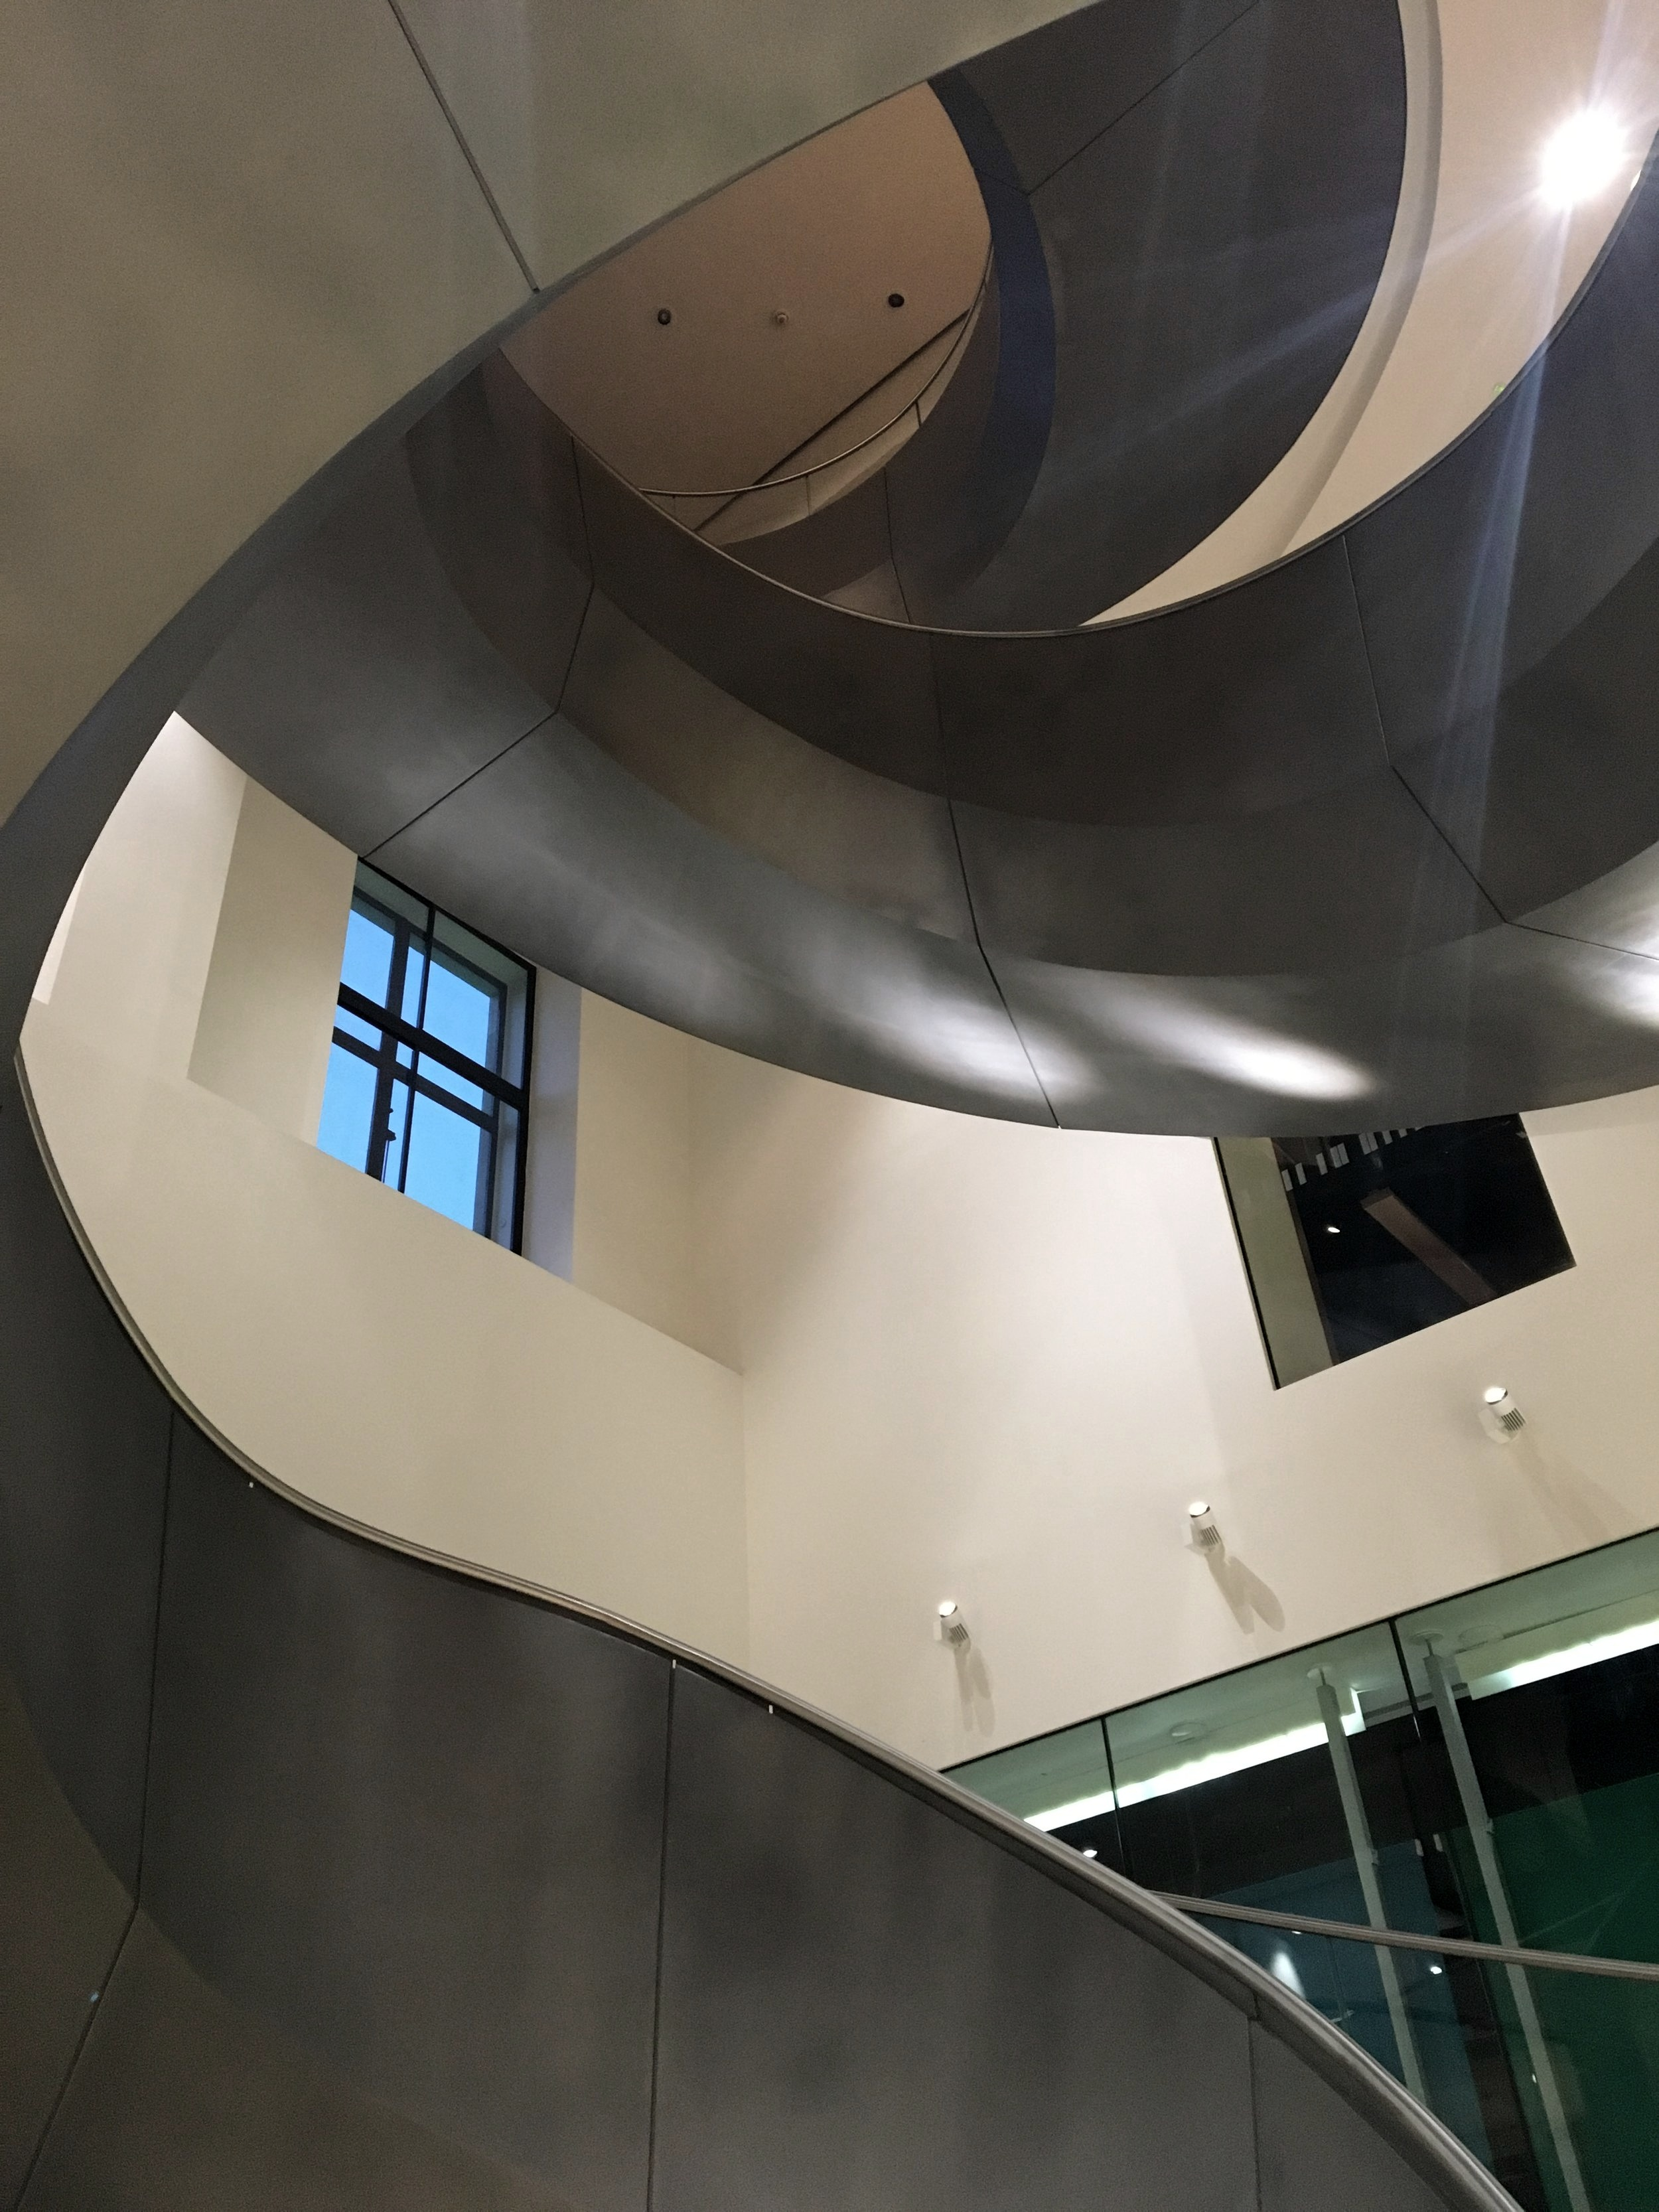 The Wellcome Collection staircase is one of my favourites in London.